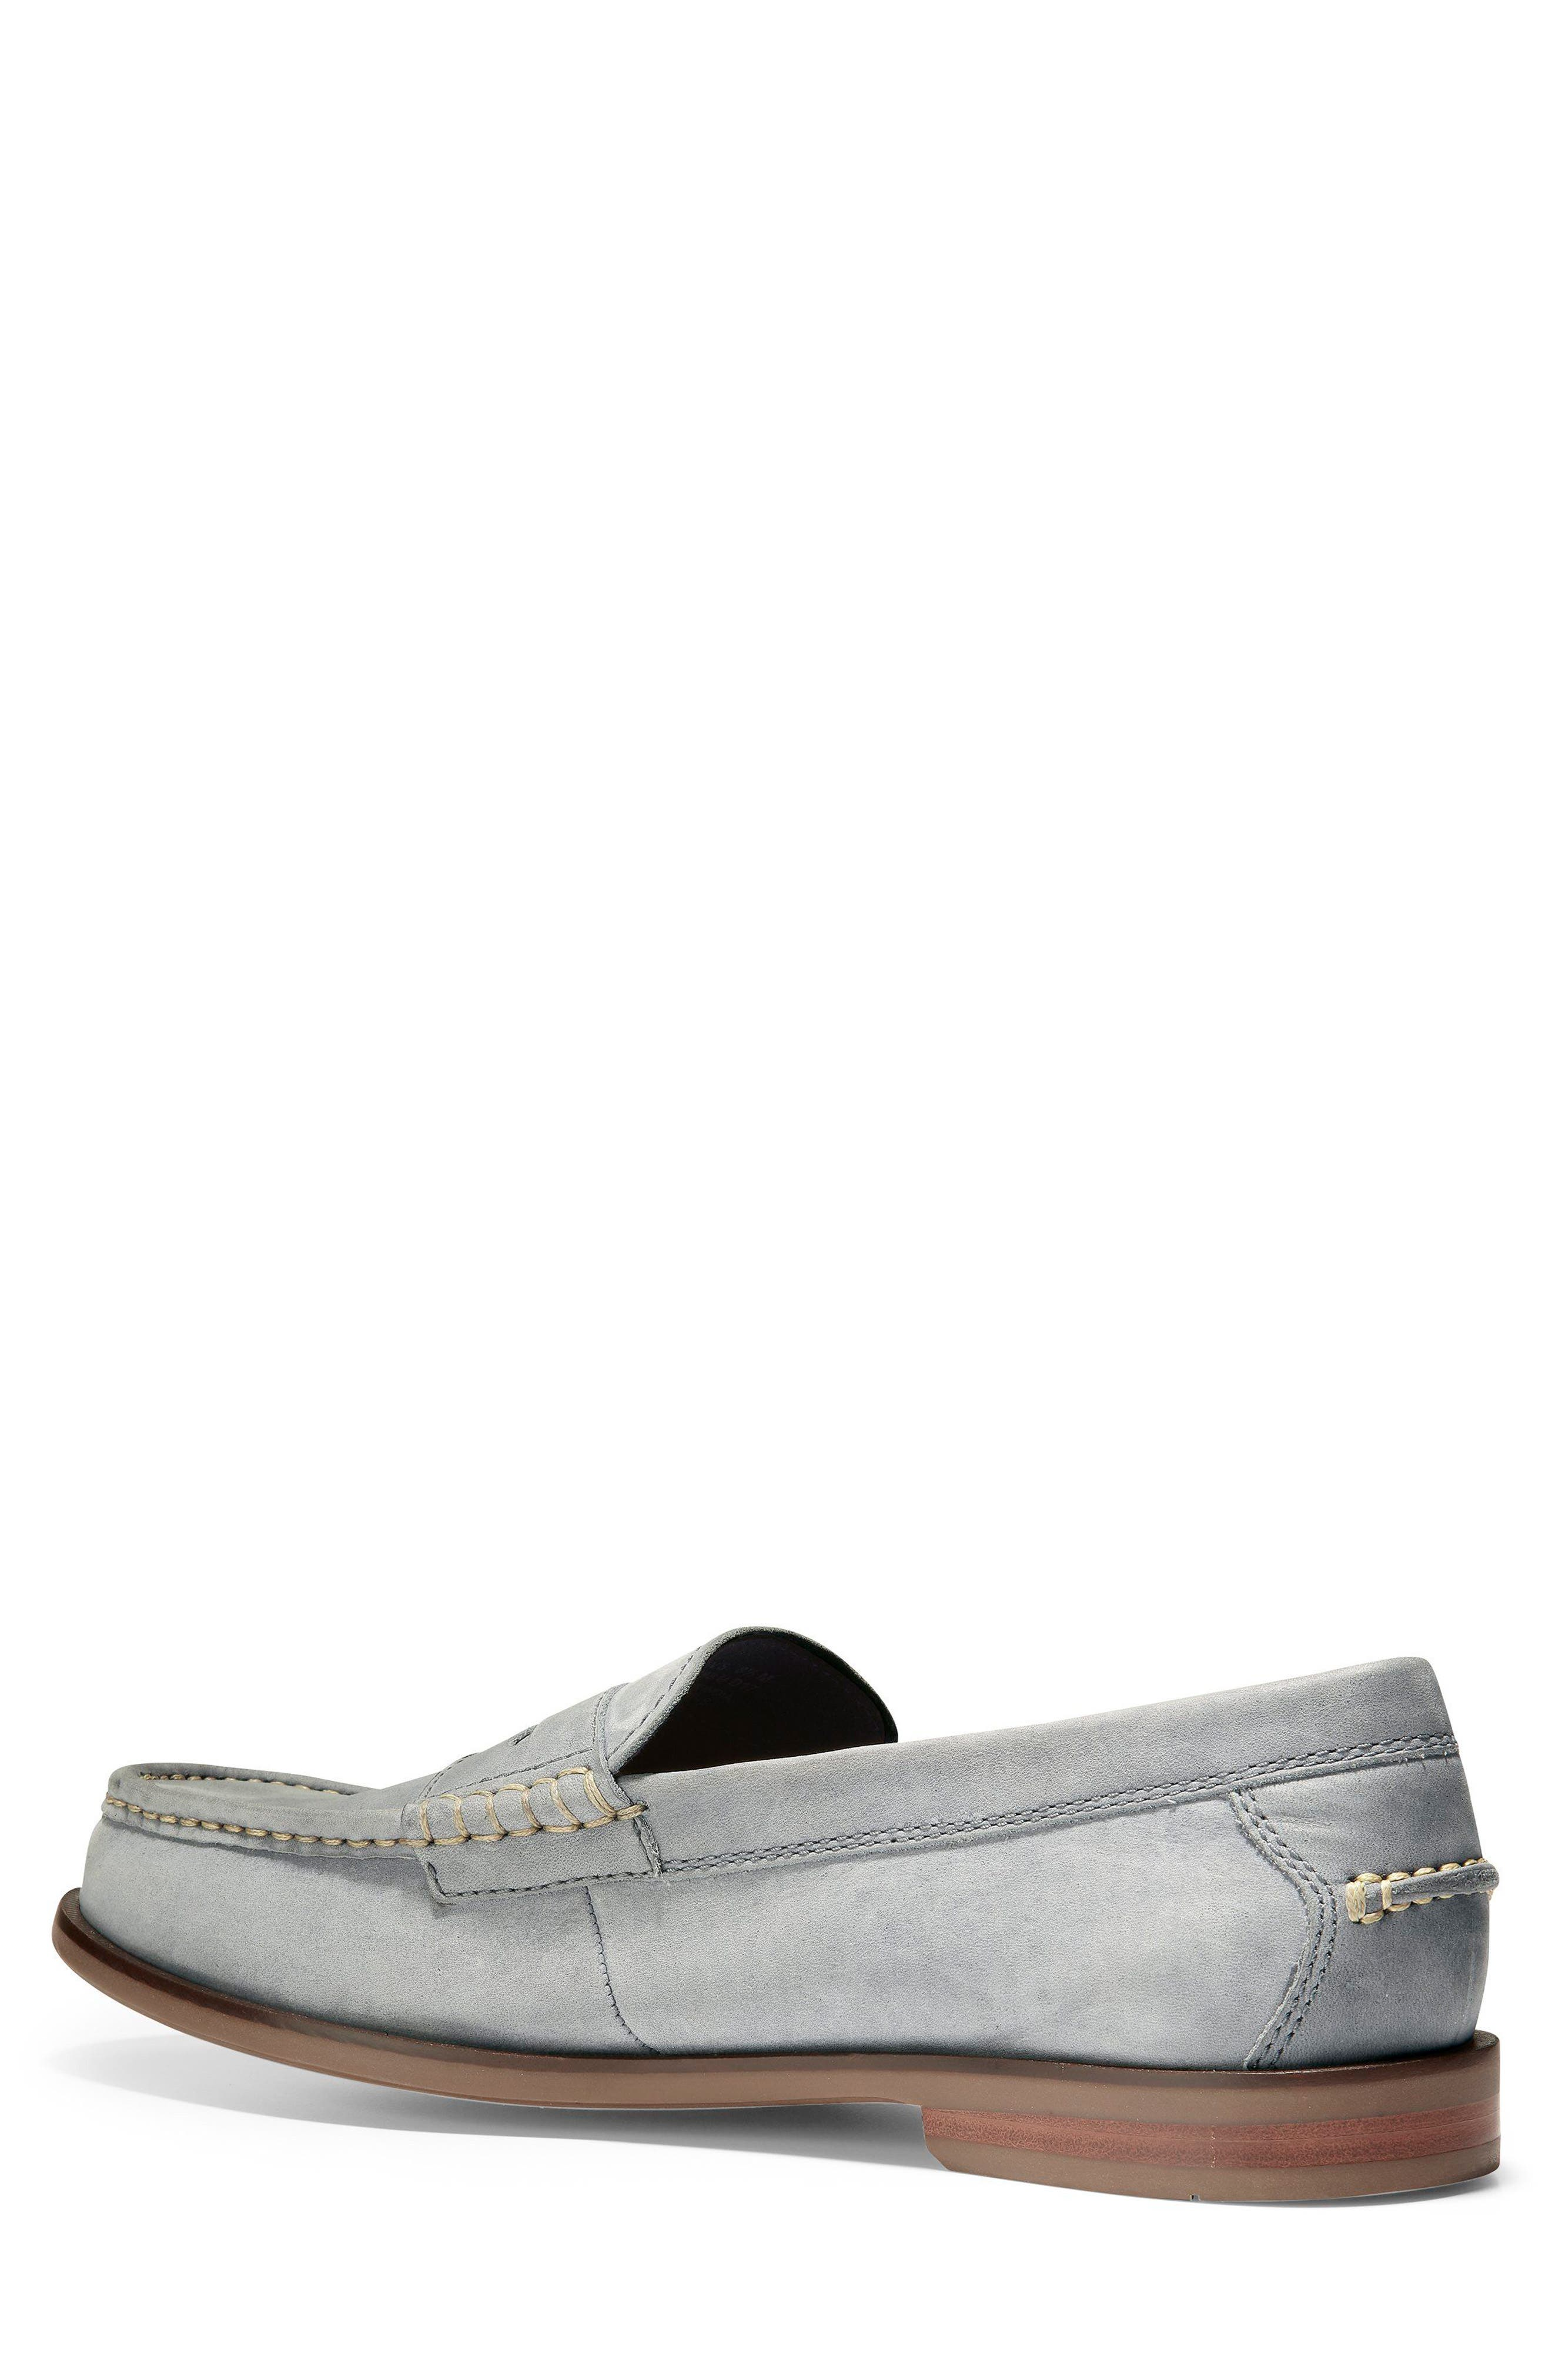 Pinch Friday Penny Loafer,                             Alternate thumbnail 2, color,                             Excalibur Nubuck